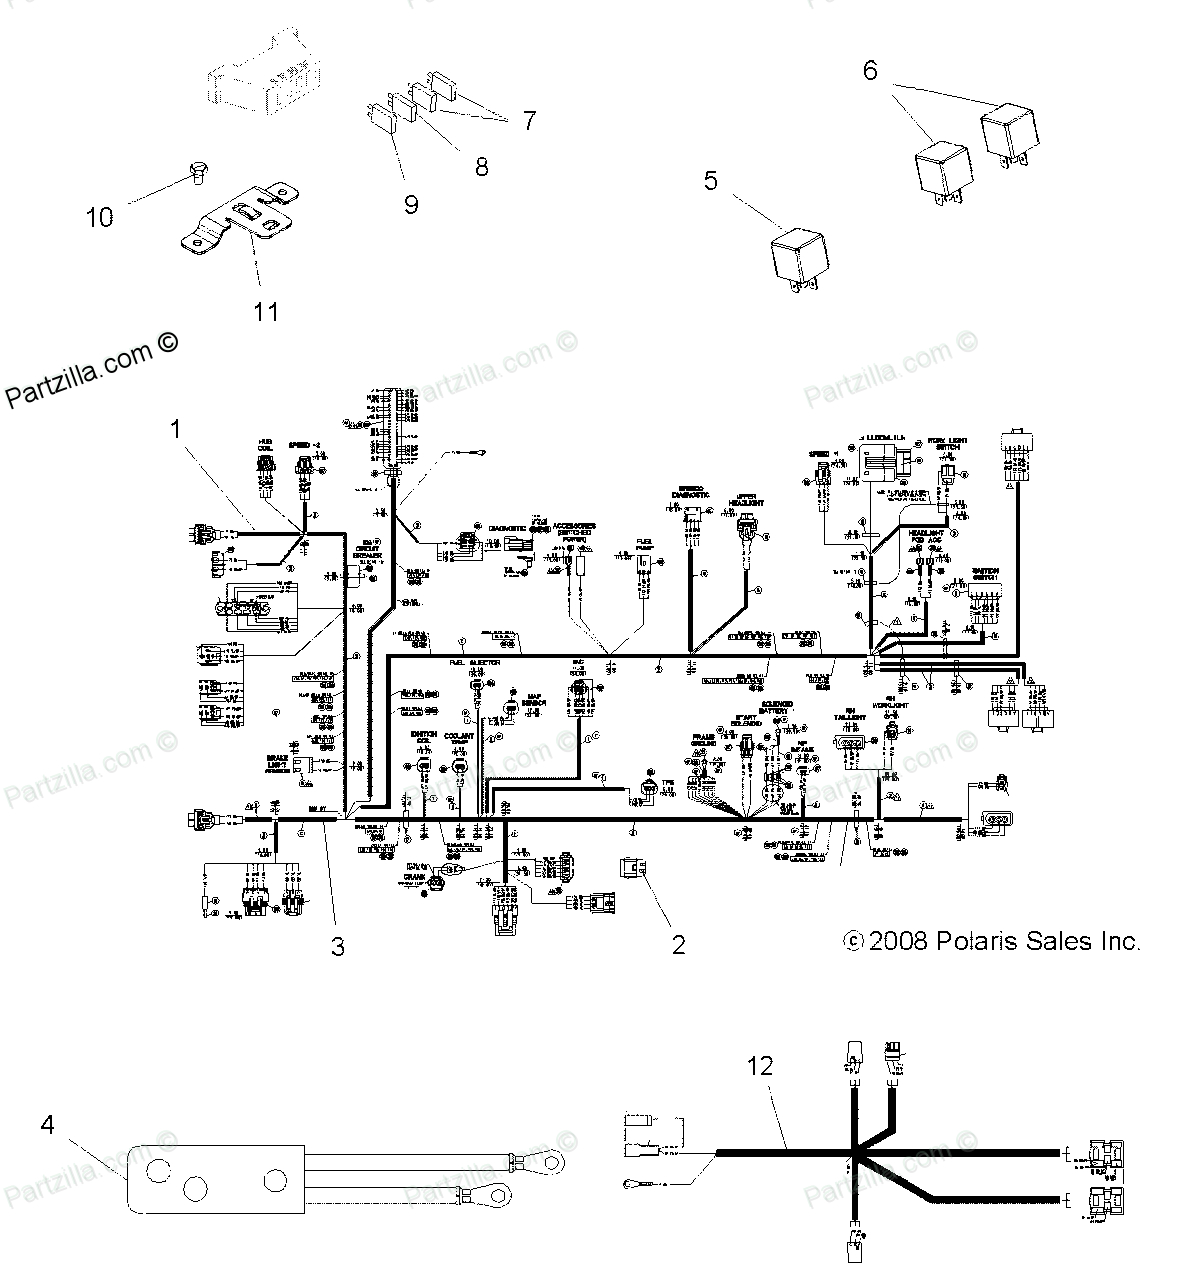 Diagram 98 Polaris Sportsman 500 Wiring Diagram Full Version Hd Quality Wiring Diagram Diagramstaubp Amimalakos It